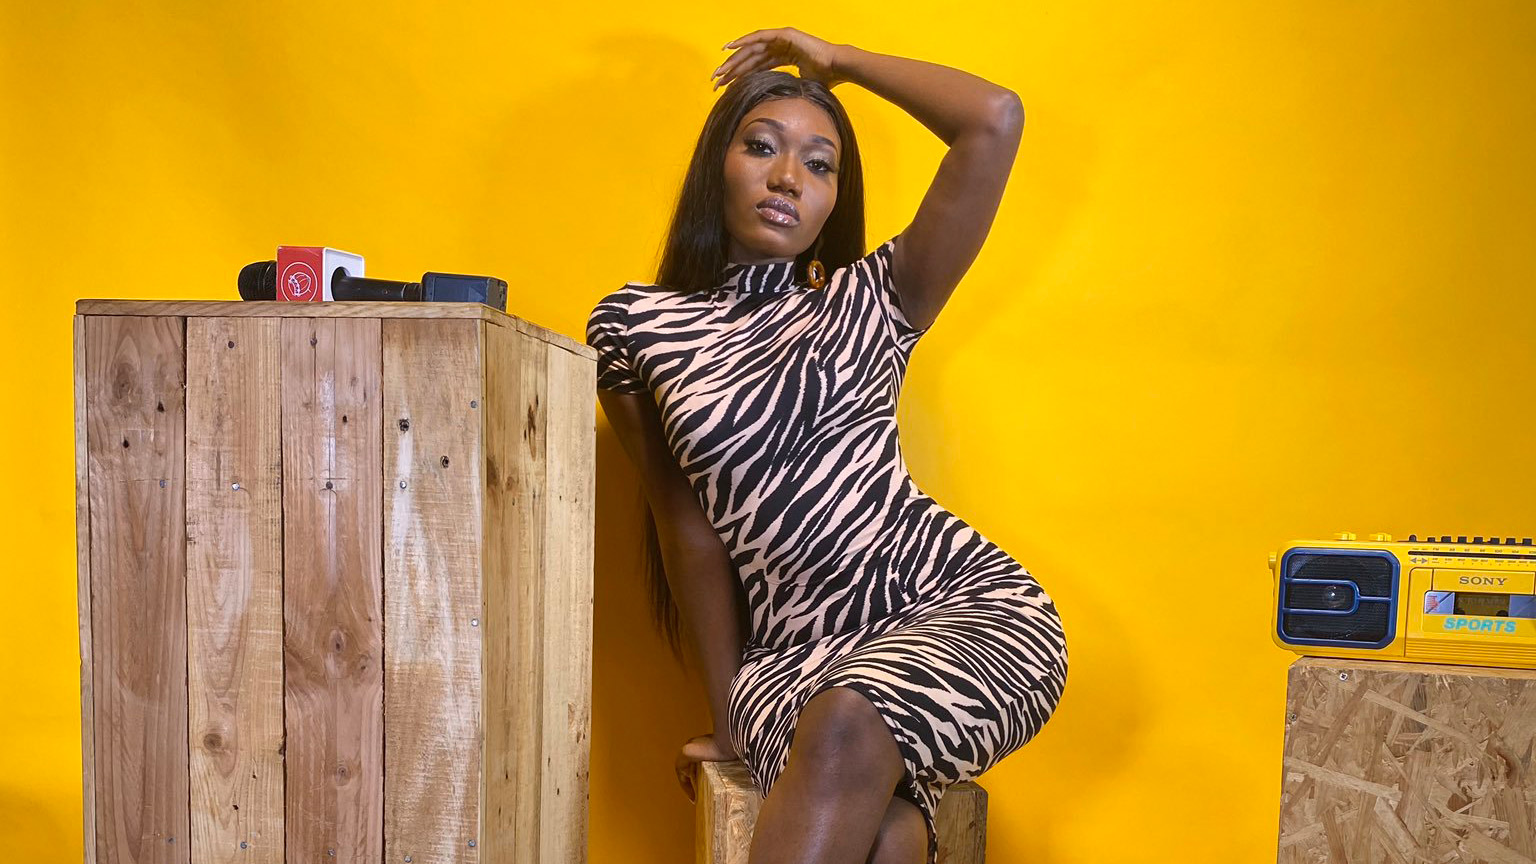 Wendy Shay ranks 57th in New Zealand's top 100 YouTube global music charts